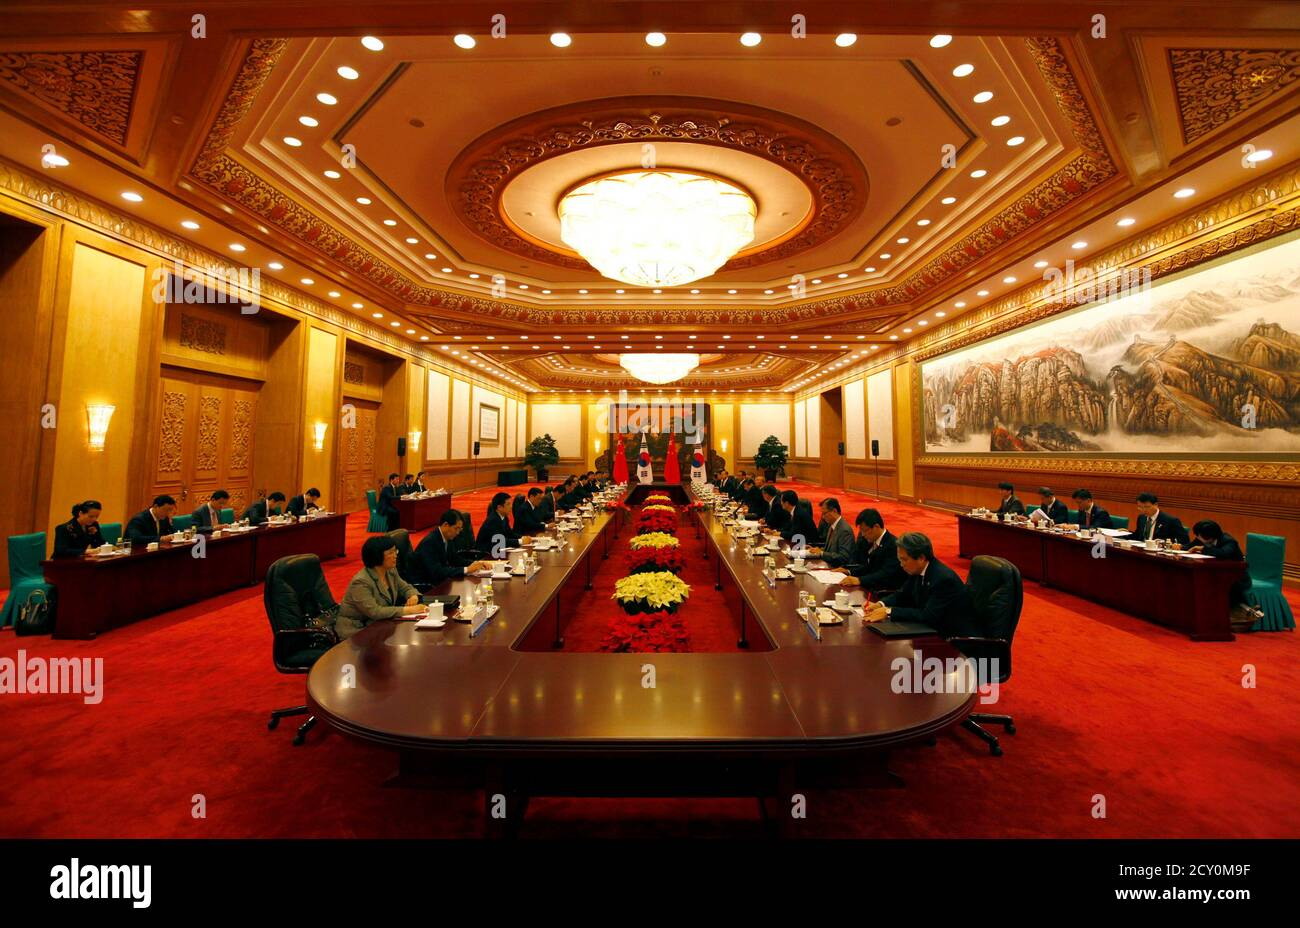 South Korea's Prime Minister Kim Hwang-Sik sits opposite China's Premier Wen Jiabao during their meeting in the Great Hall of the People in Beijing April 13, 2011. Kim is on a four-day official visit to China.    REUTERS/David Gray    (CHINA - Tags: POLITICS) Foto de stock